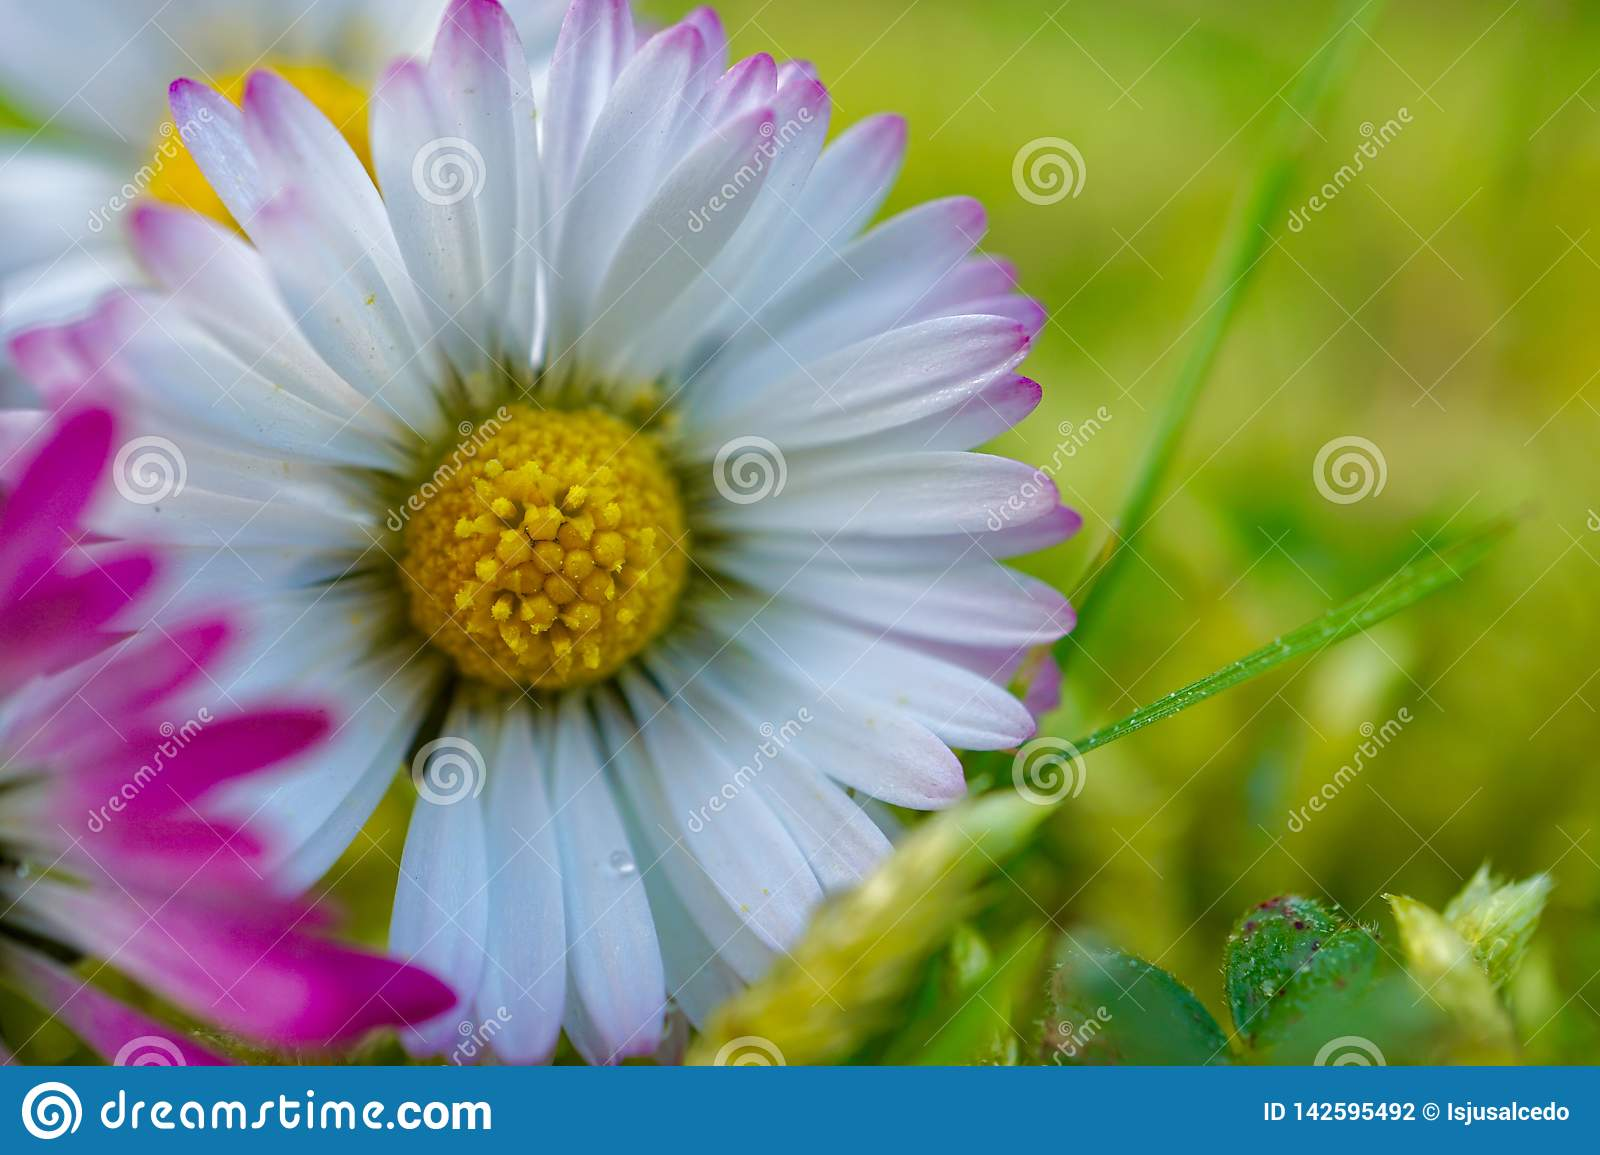 Daisy flower plant petals in springtime